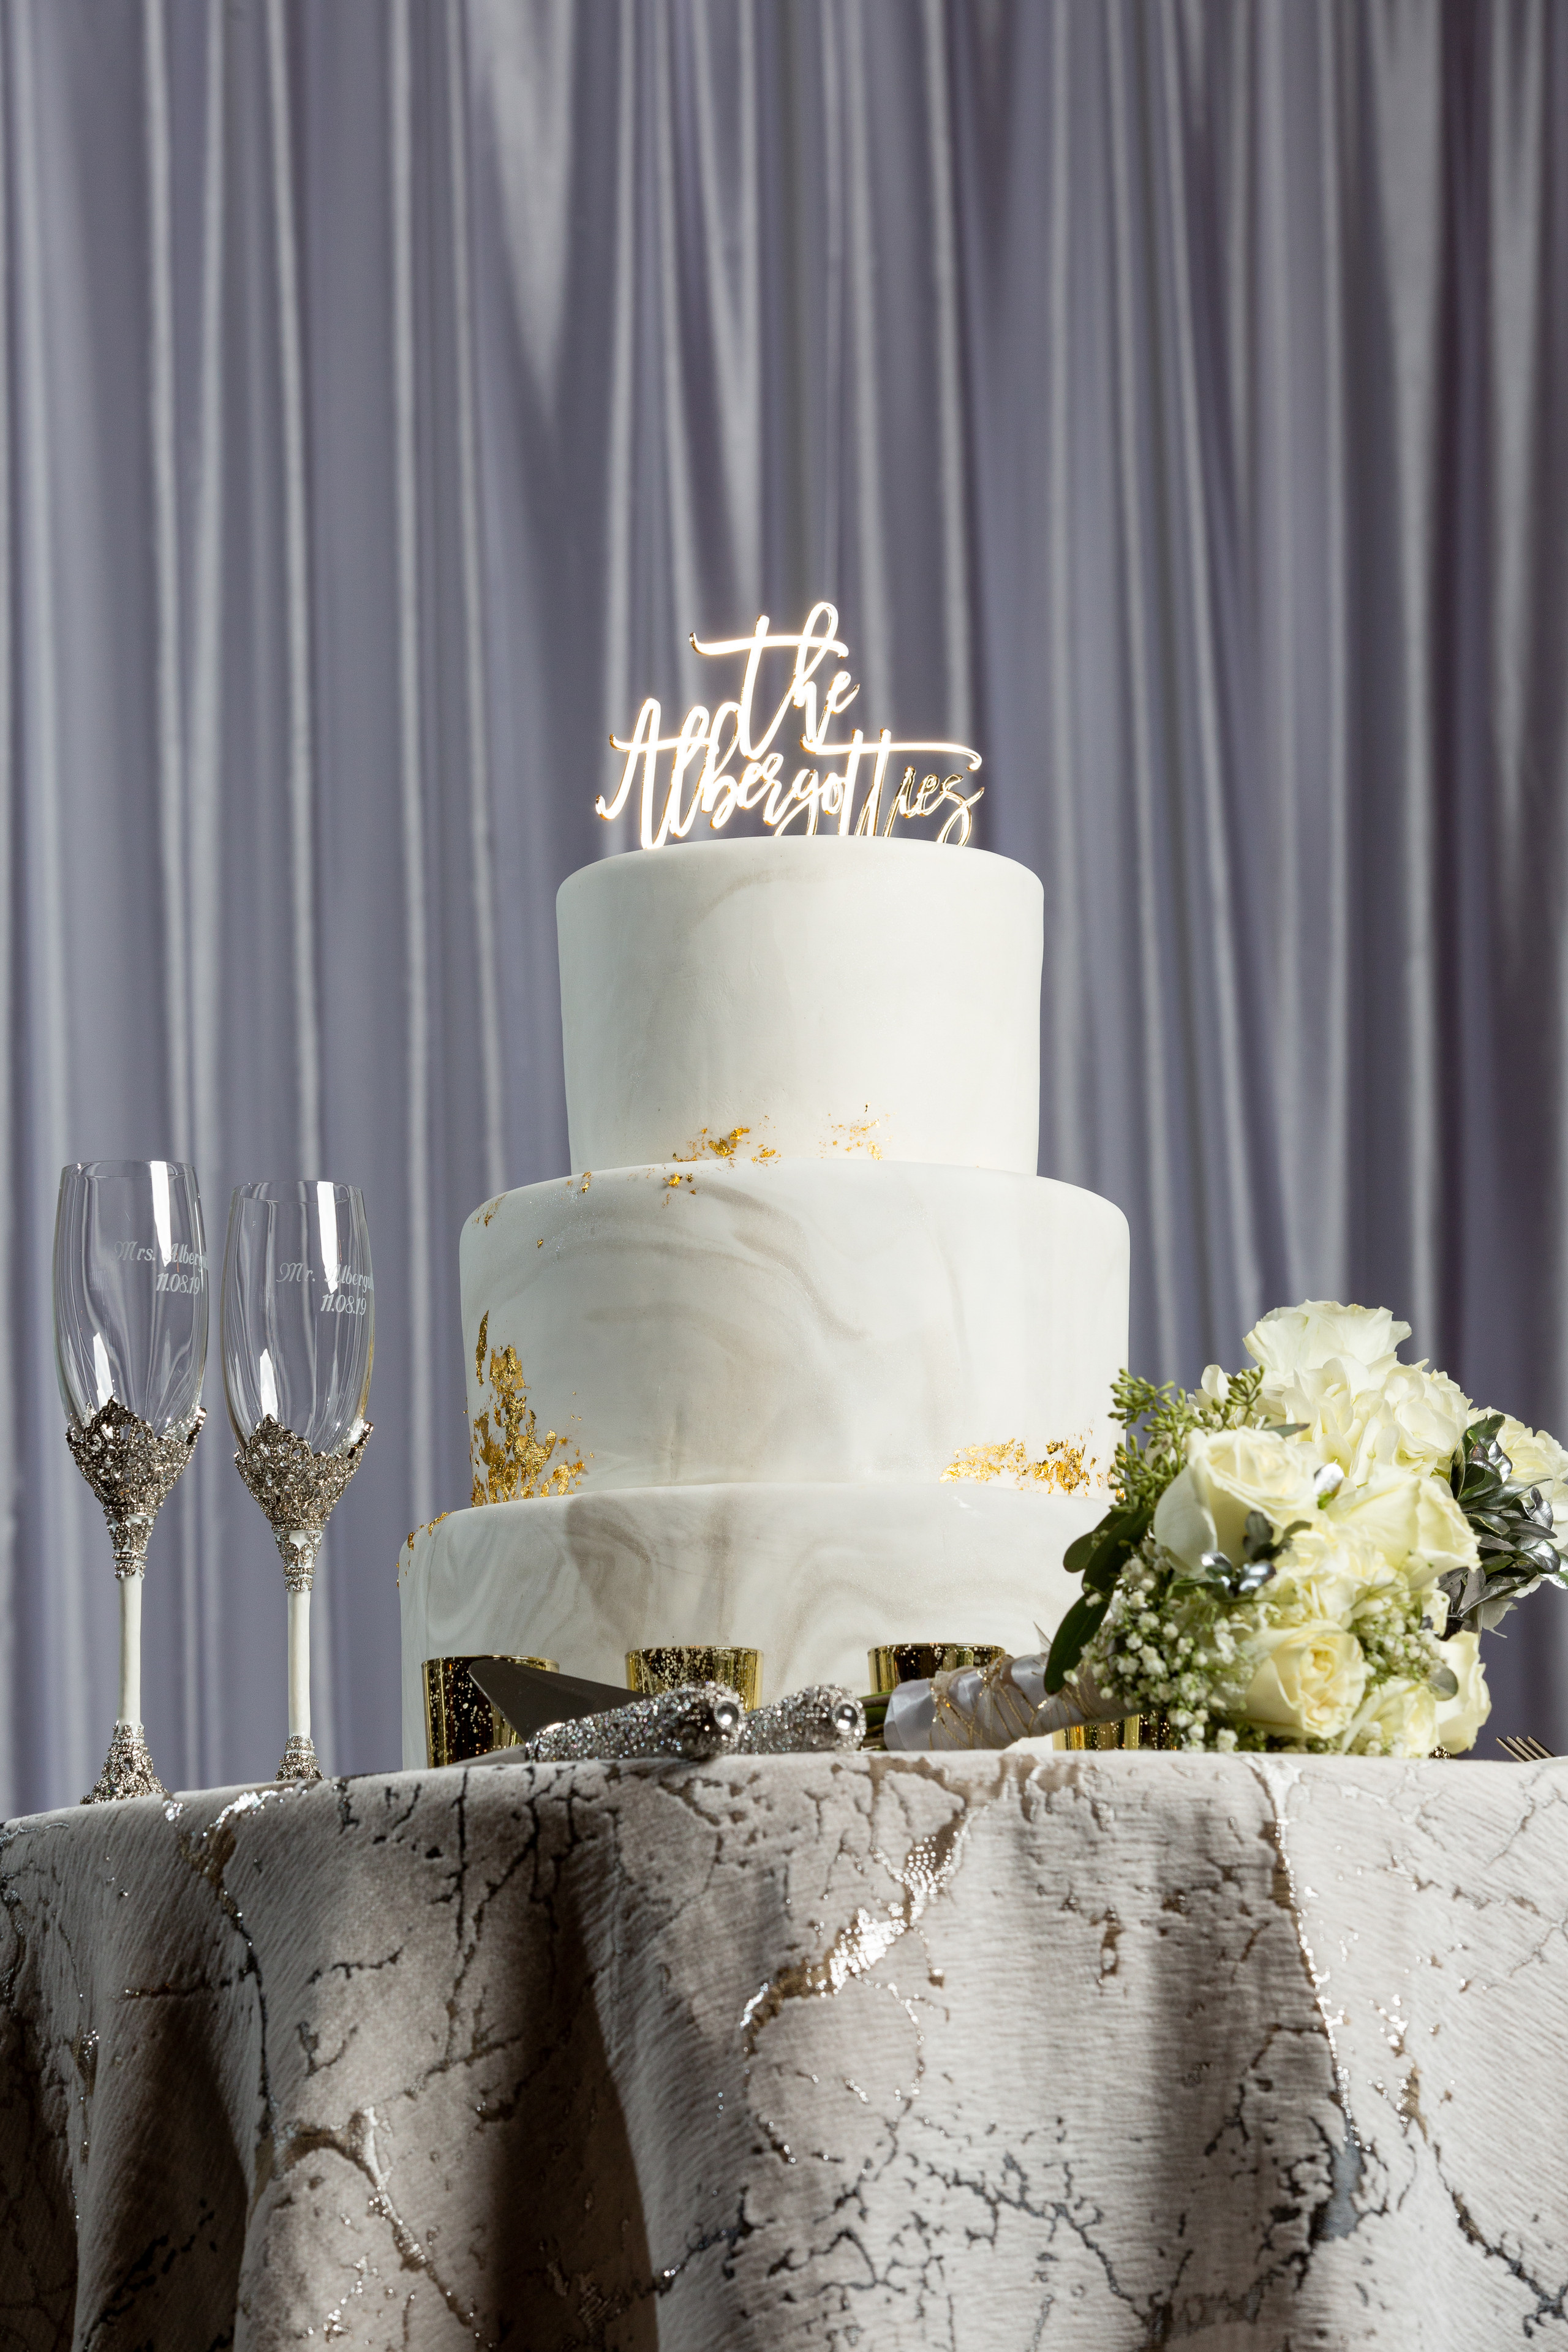 The stunning marble wedding cake, his and her flutes, and bride's bouquet on display during the wedding reception at the Hilton Main in Norfolk, Virginia.